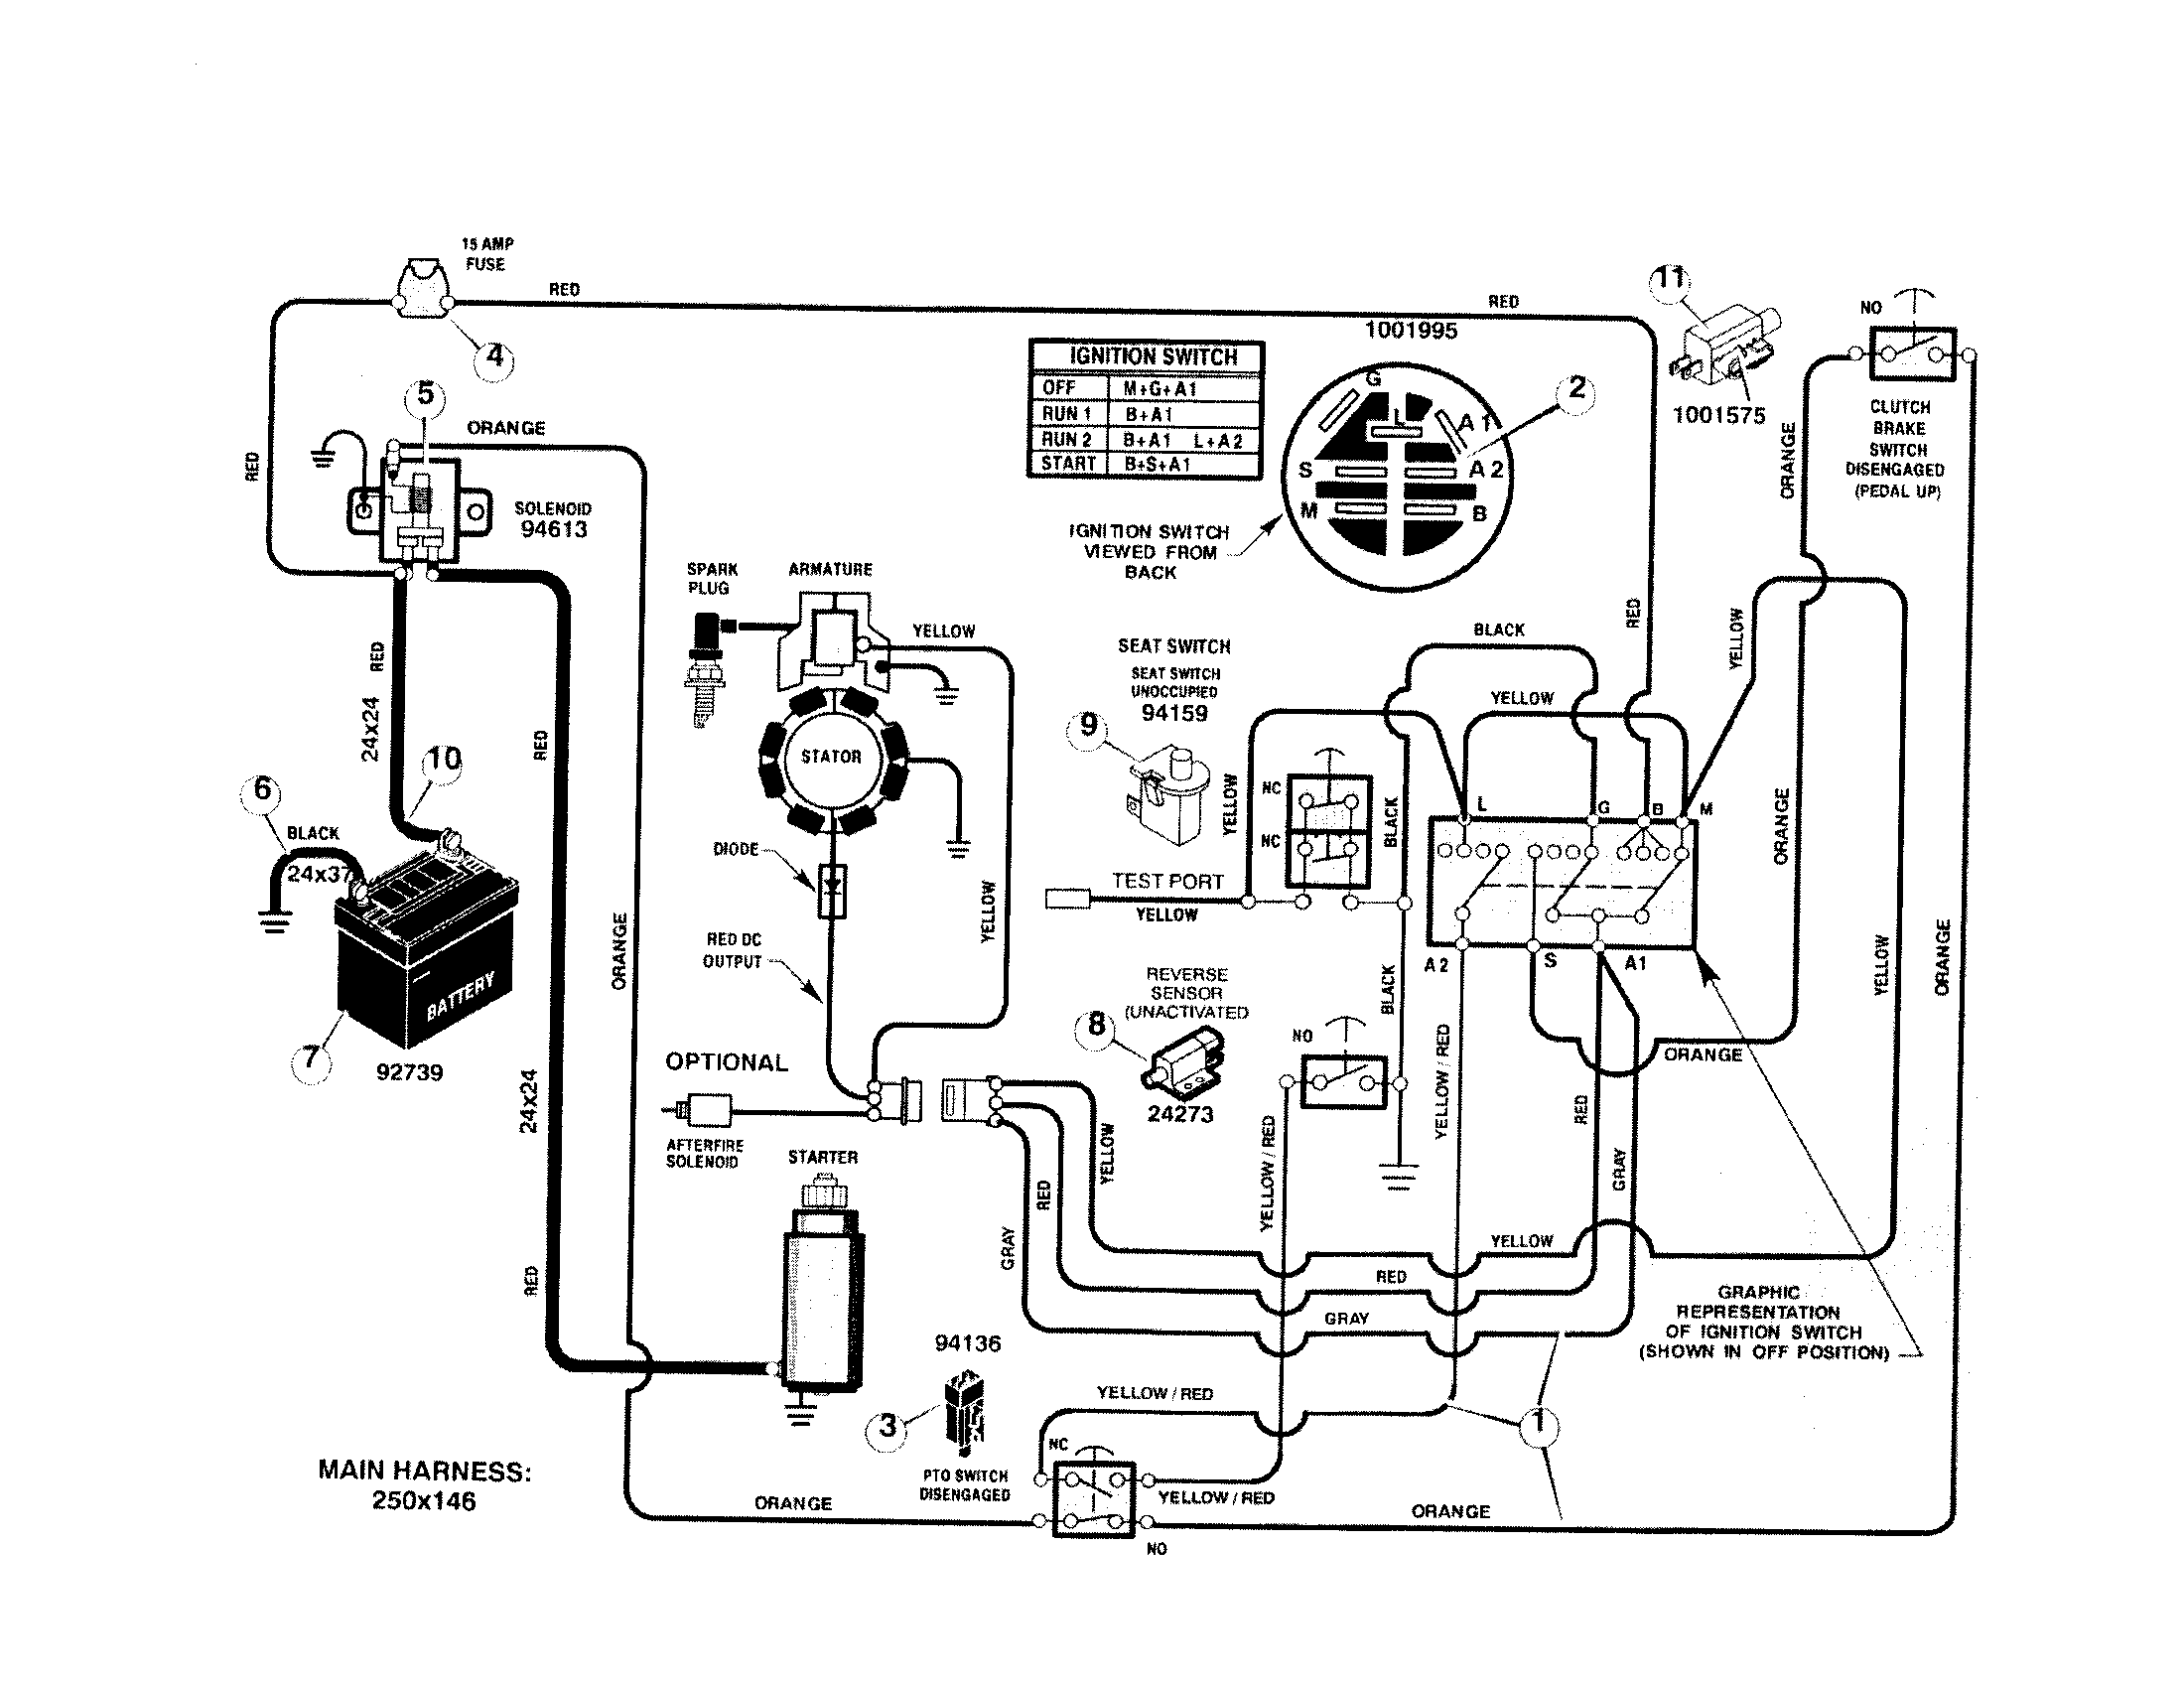 ELECTRICAL SYSTEM Diagram & Parts List for Model 536270340